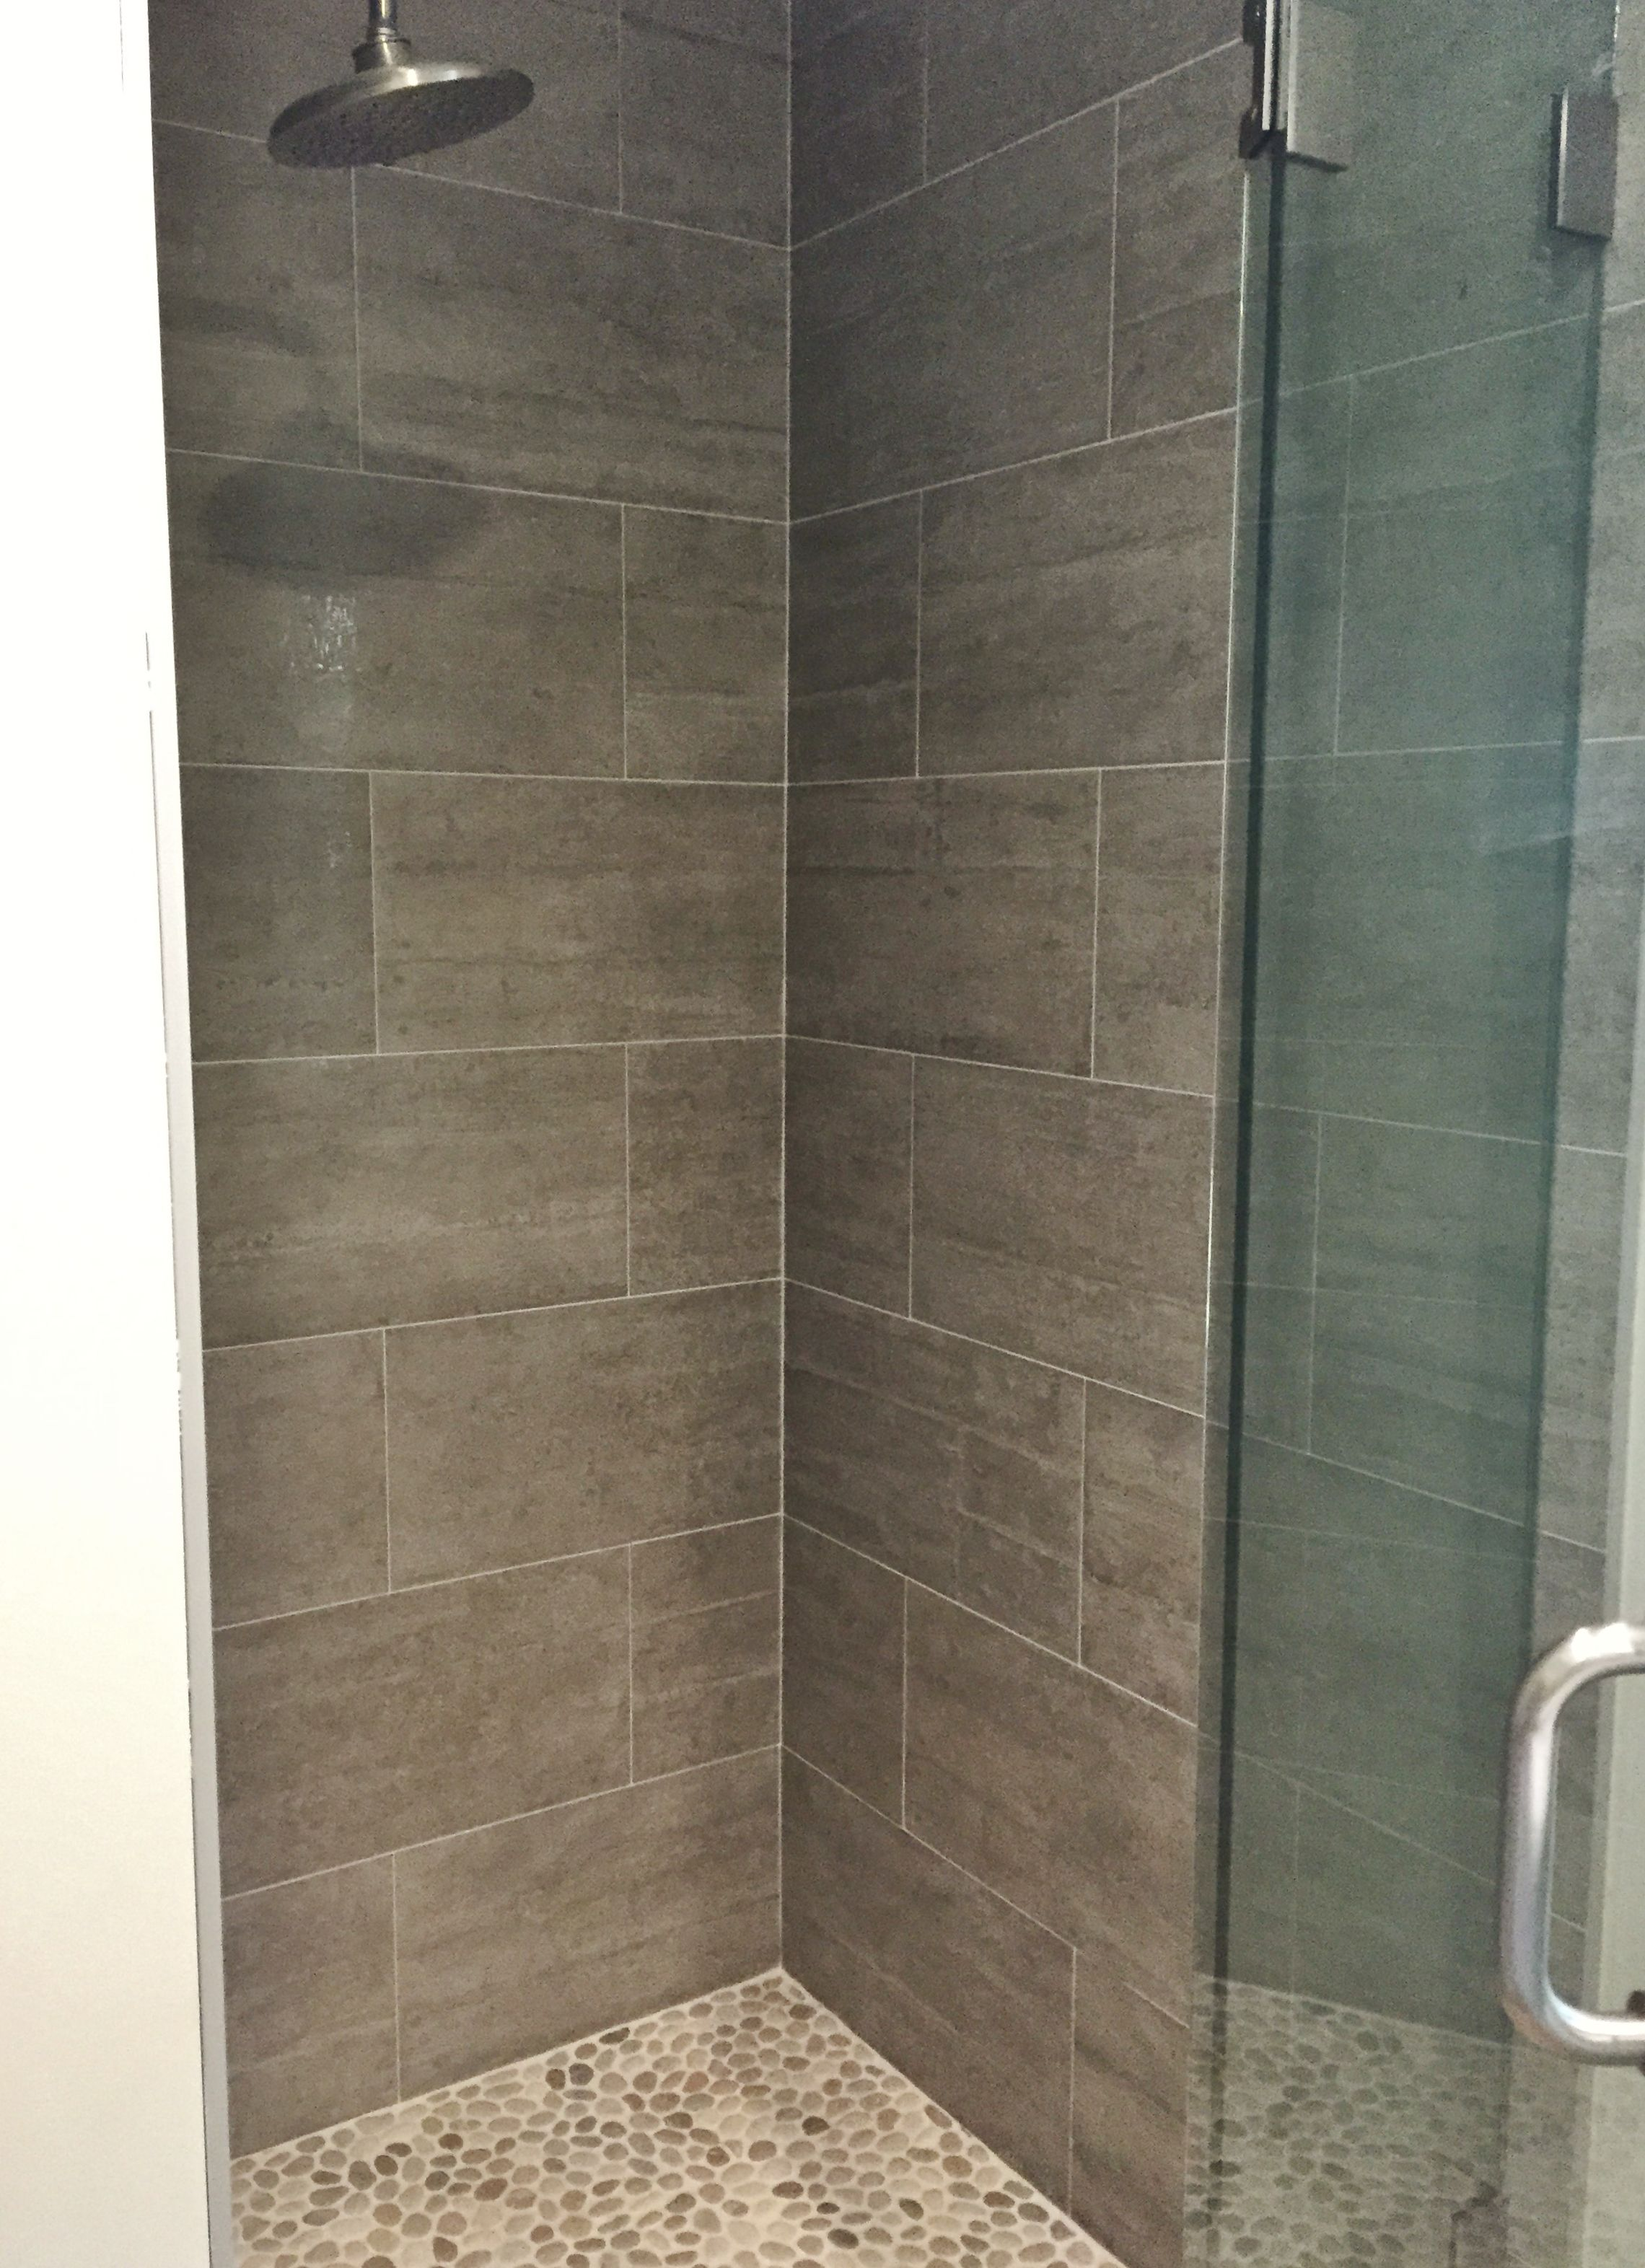 Master Shower 12x24 Porcelain Tile On Walls Pebbles On Floor Tile Bathroom Shower Wall Tile 12x24 Tile